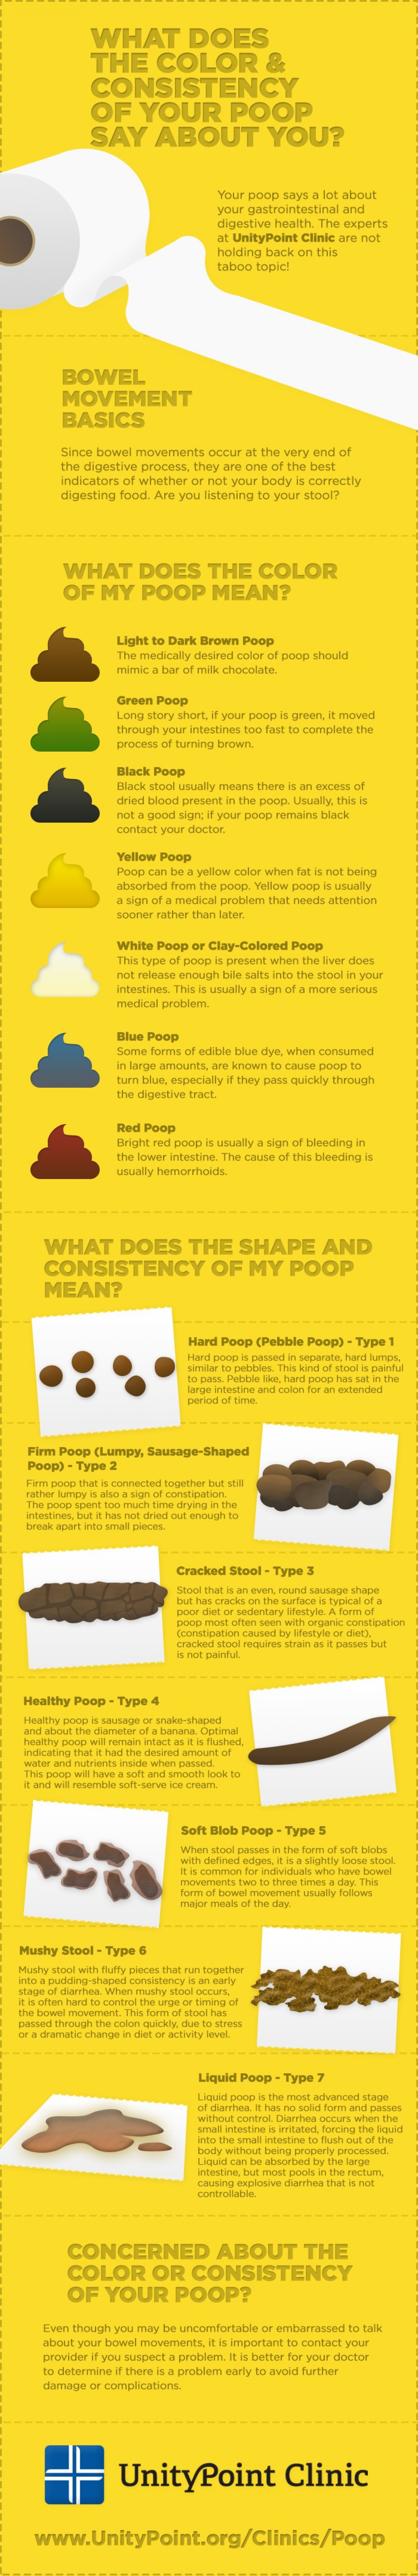 What Does The Color & Consistency Of Your Poop Say About You? Infographic